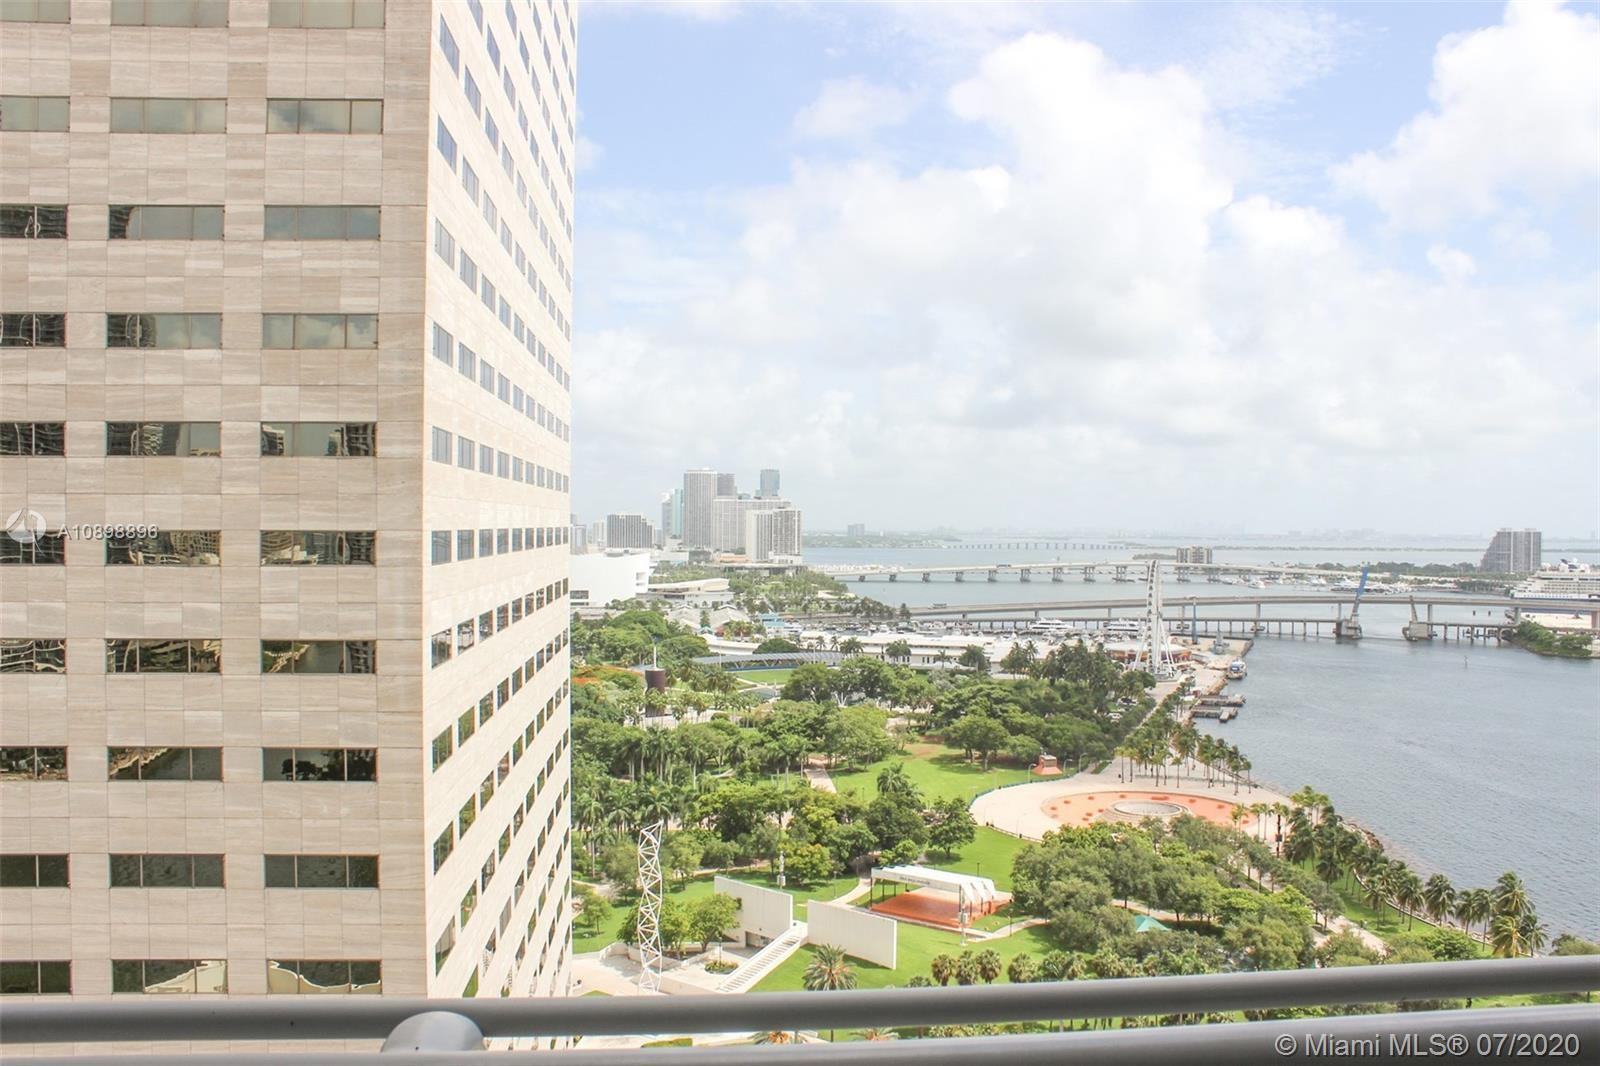 This beautiful and spacious 2-bedroom 2-bathroom corner unit on the 25th floor, offers spectacular city and bay views of Downtown Miami. Tucked privately away on the waterfront and yet walking distance to American Airlines Arena, Bayfront Park, Whole Foods, Brickell City Center and all splendor that Downtown has to offer. This lovely unit has granite counter-tops, stainless steel appliances, washer and dryer combo and is being sold fully furnished. This building is extremely desirable and some of its features include; two pools, a fitness center, 24hr security, valet and high-speed elevators just to name a few. This gorgeous unit is available today!